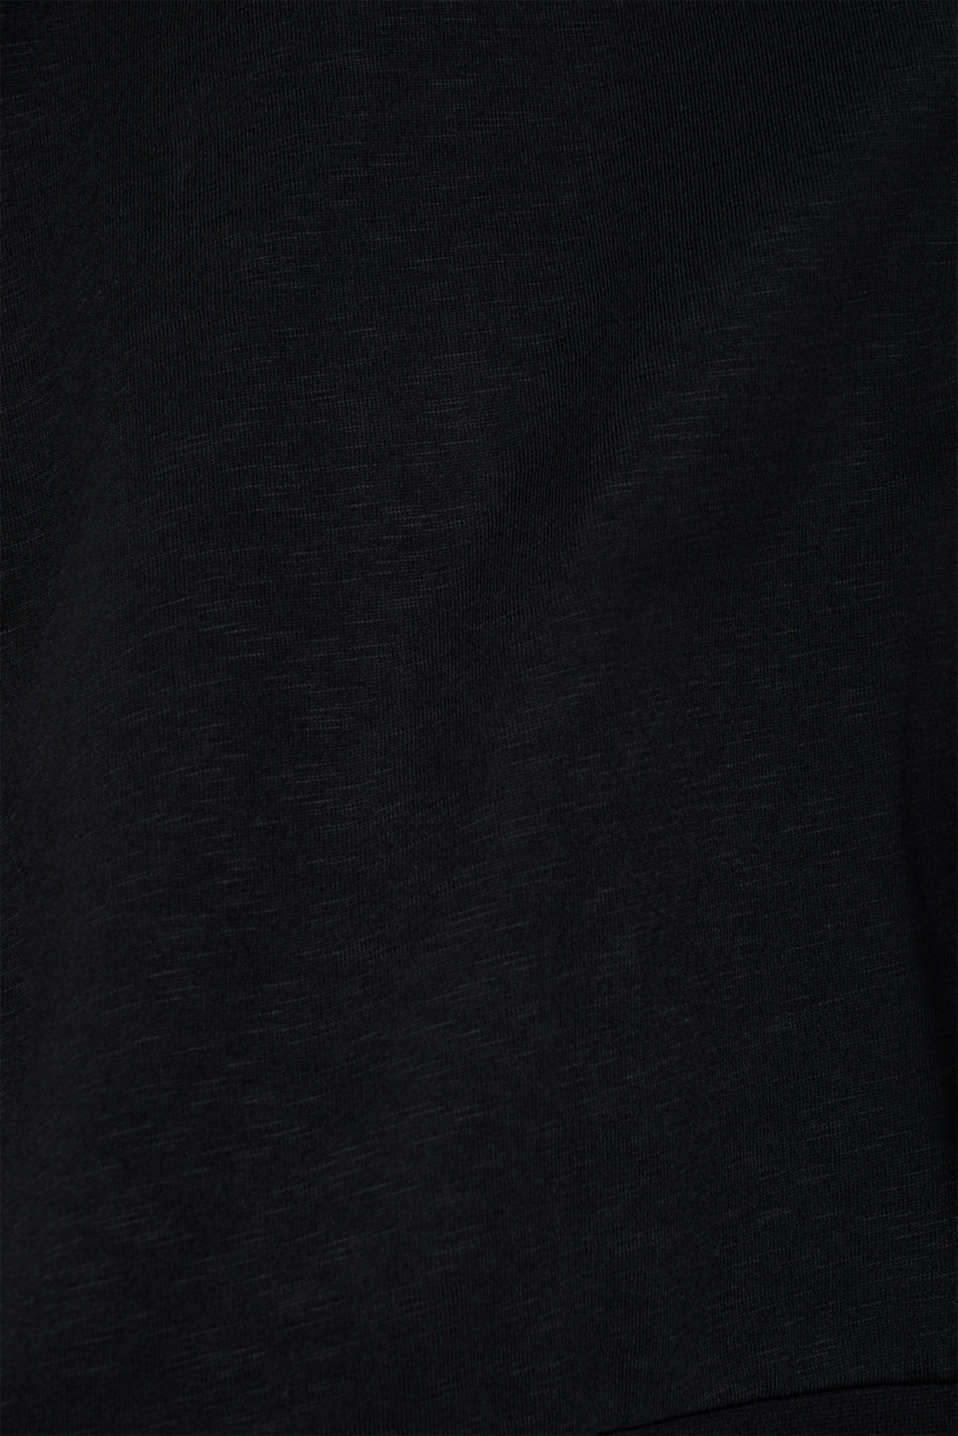 Sweatshirt cardigan in 100% cotton, BLACK, detail image number 4